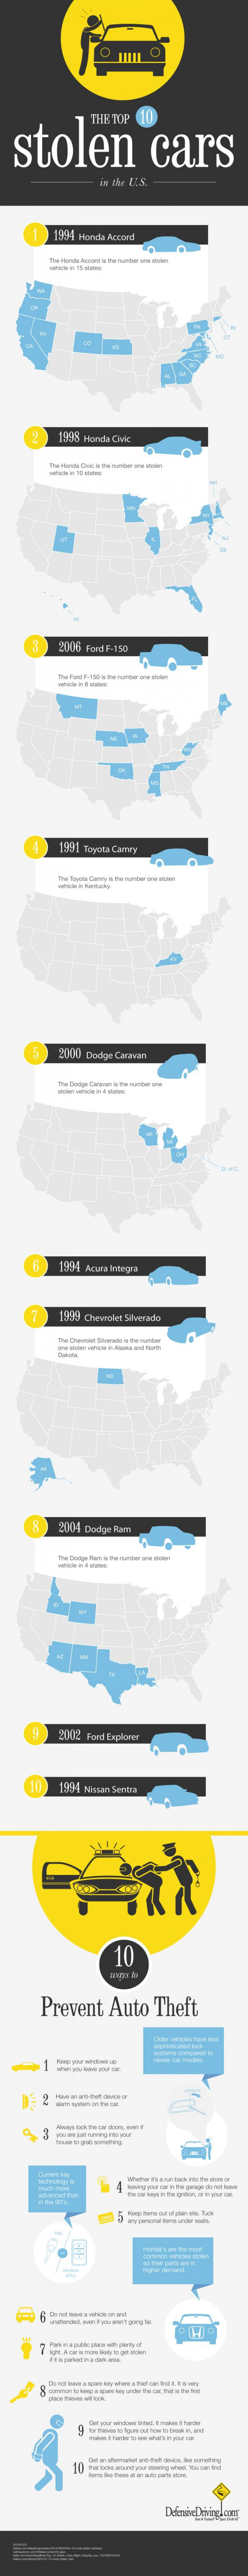 Top 10 Stolen Cars in the U.S. Infographic